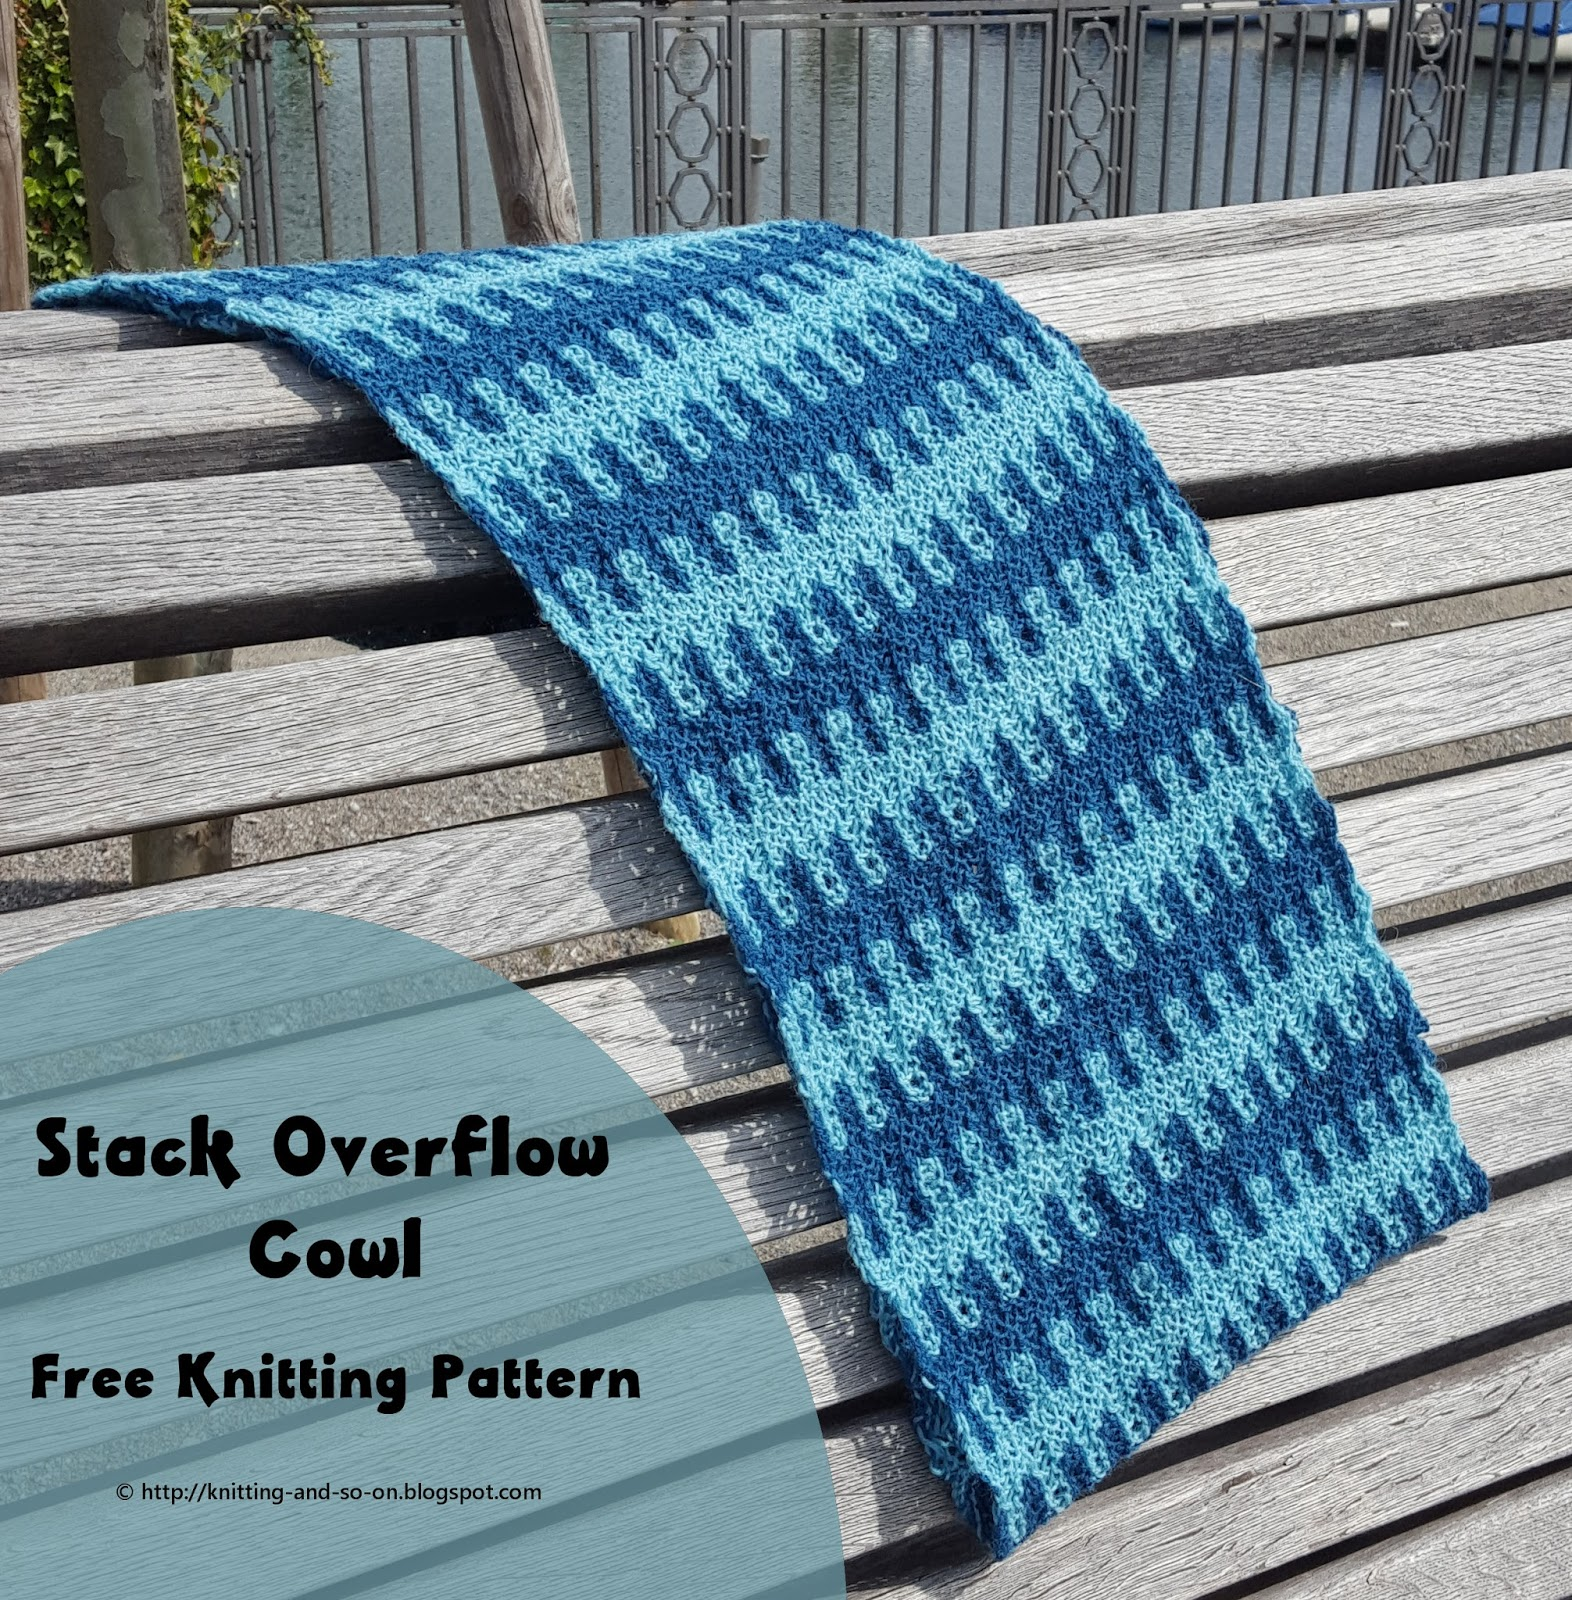 Knitting and so on: Stack Overflow Cowl